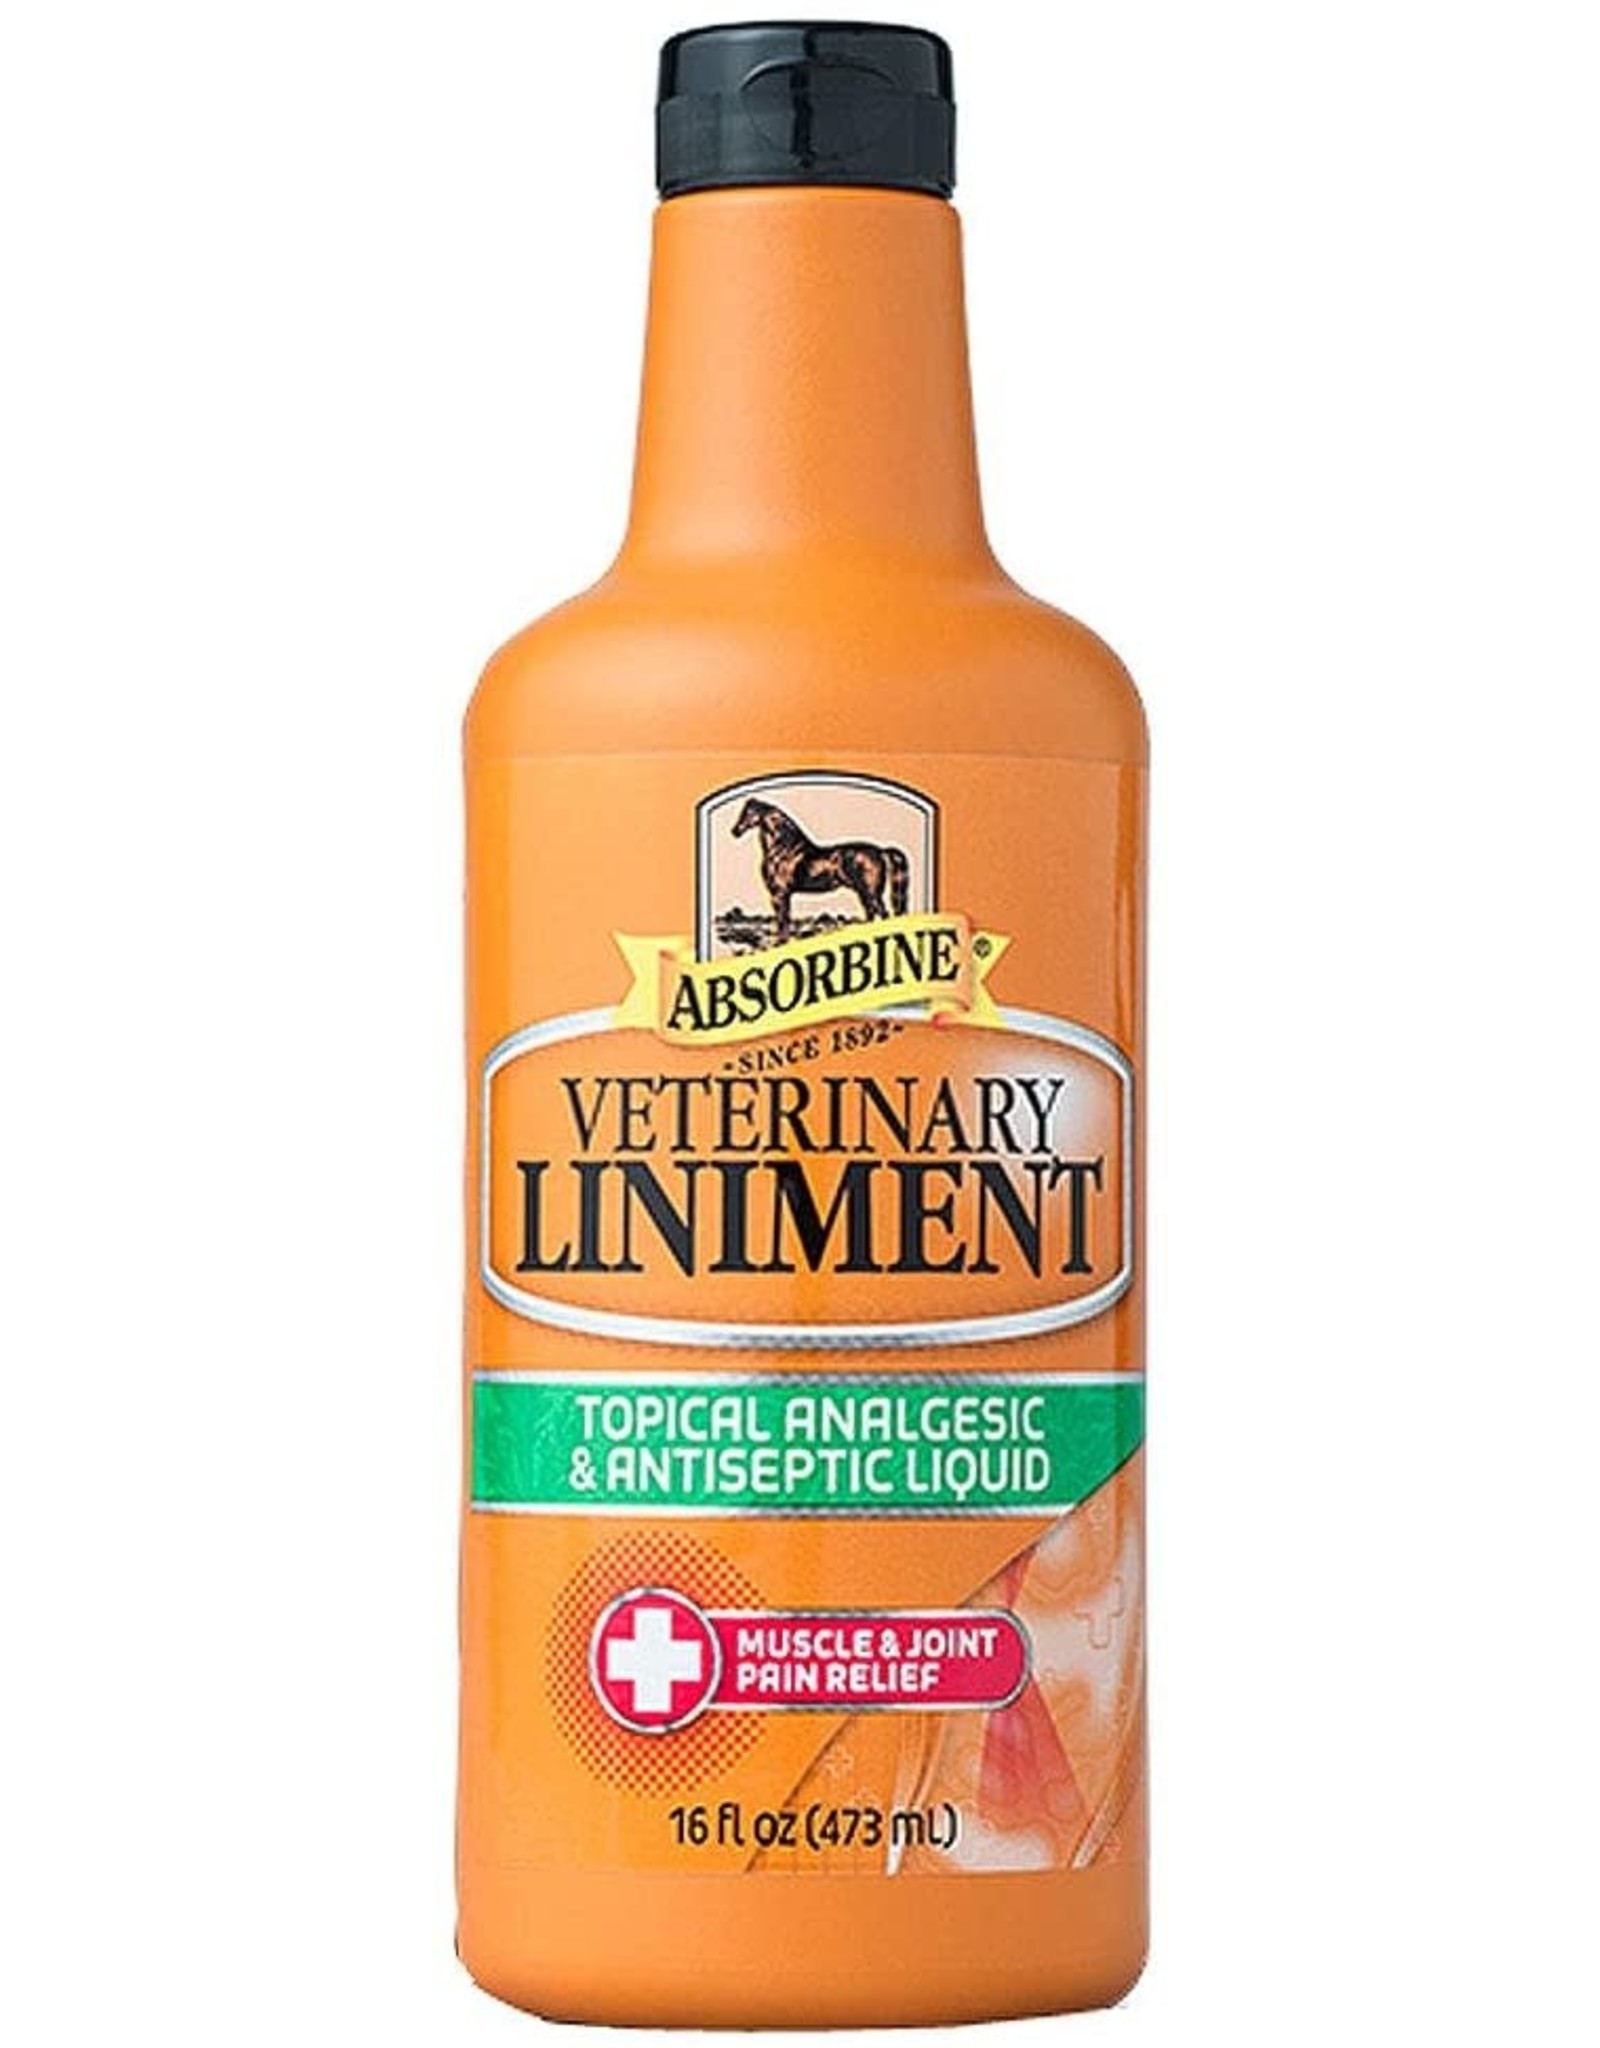 Absorbine Veterinary Topical Analgesic & Antiseptic Horse Liniment 16 oz